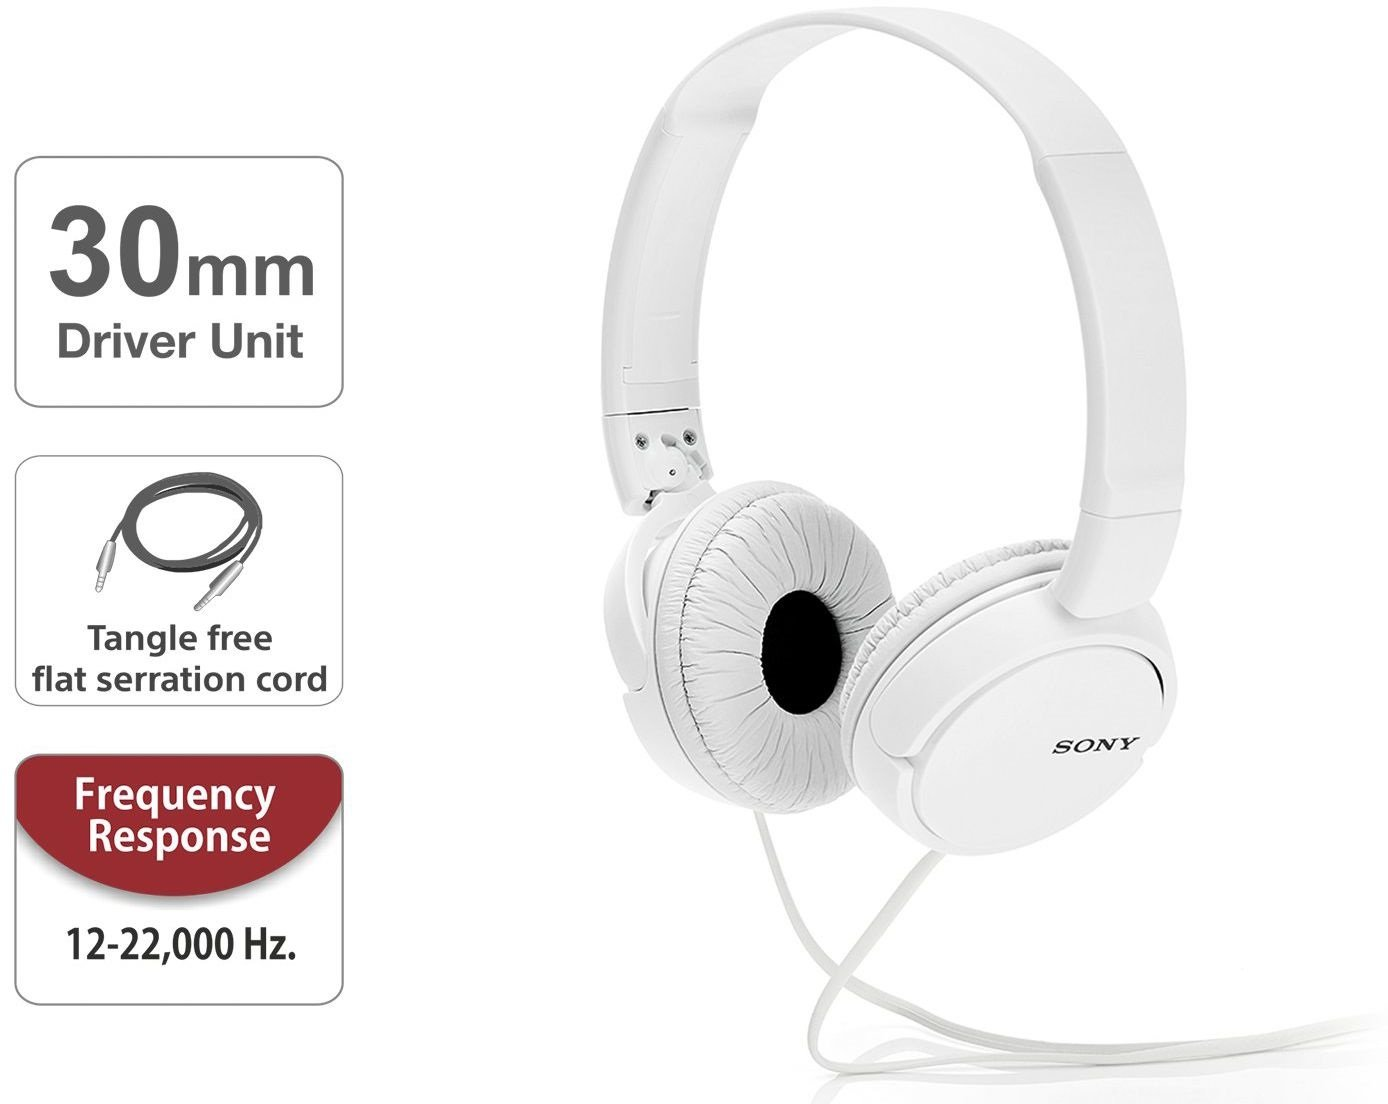 e08e9cd8b0d Sony MDR-ZX110A On-Ear Stereo Headphones , without mic: Amazon.in:  Electronics